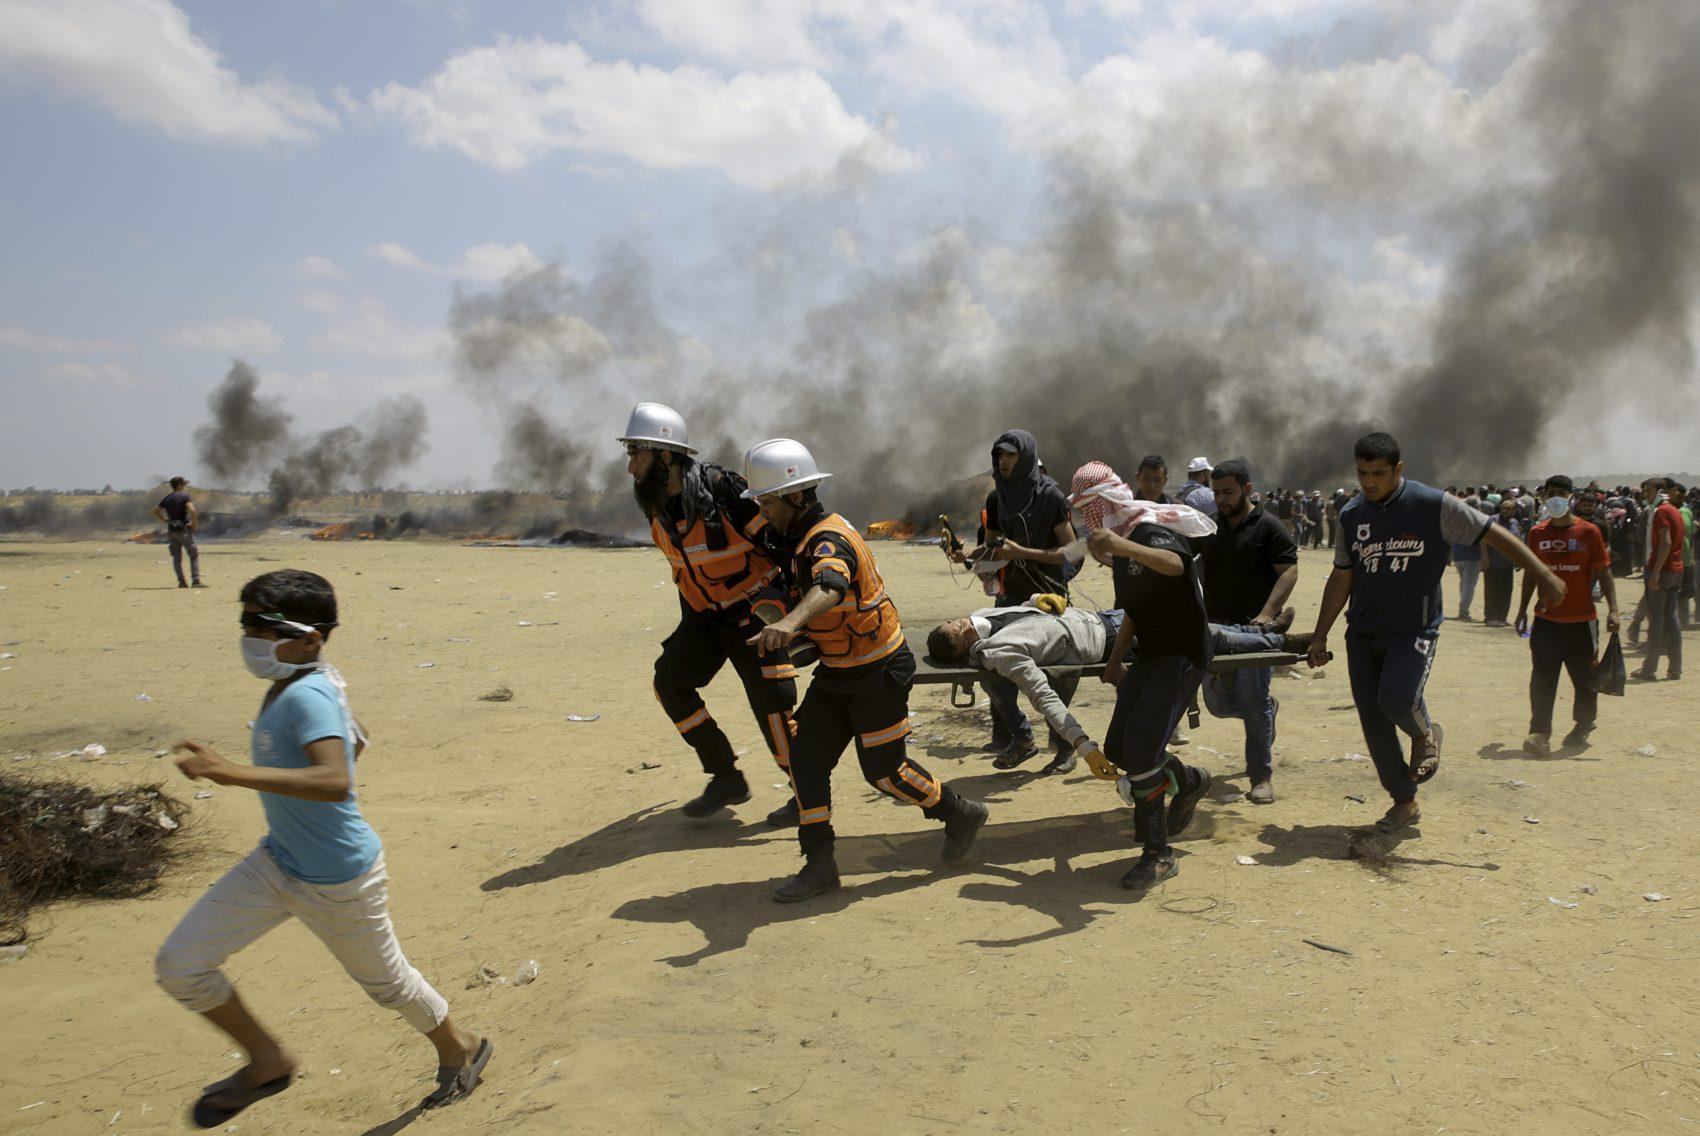 New Zealand statement on Gaza deaths 'regrettable' - Israel Embassy